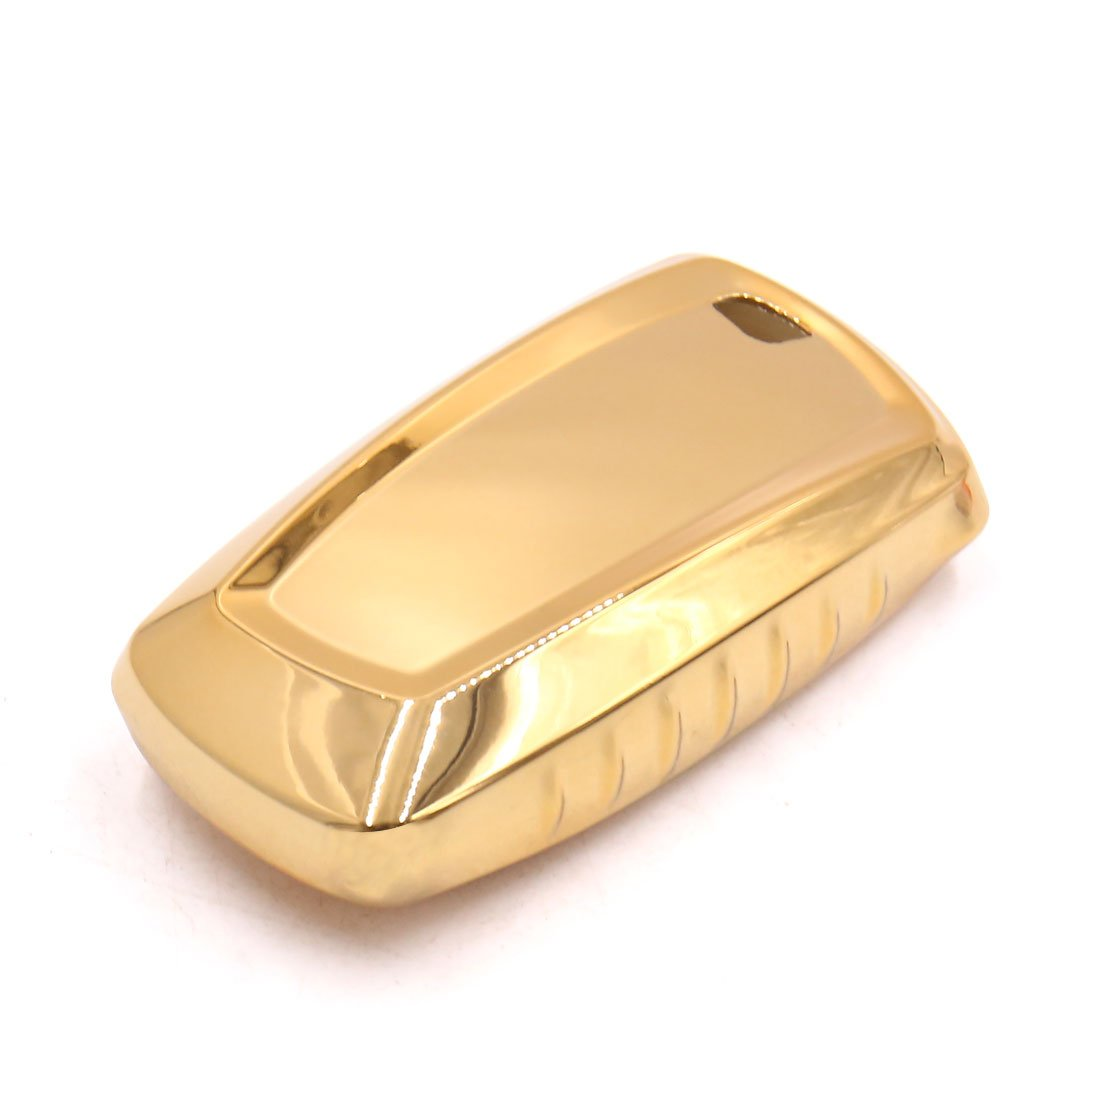 uxcell Gold Tone Remote Key Case Holder Shell Protect Cover Fit For 2013 BMW